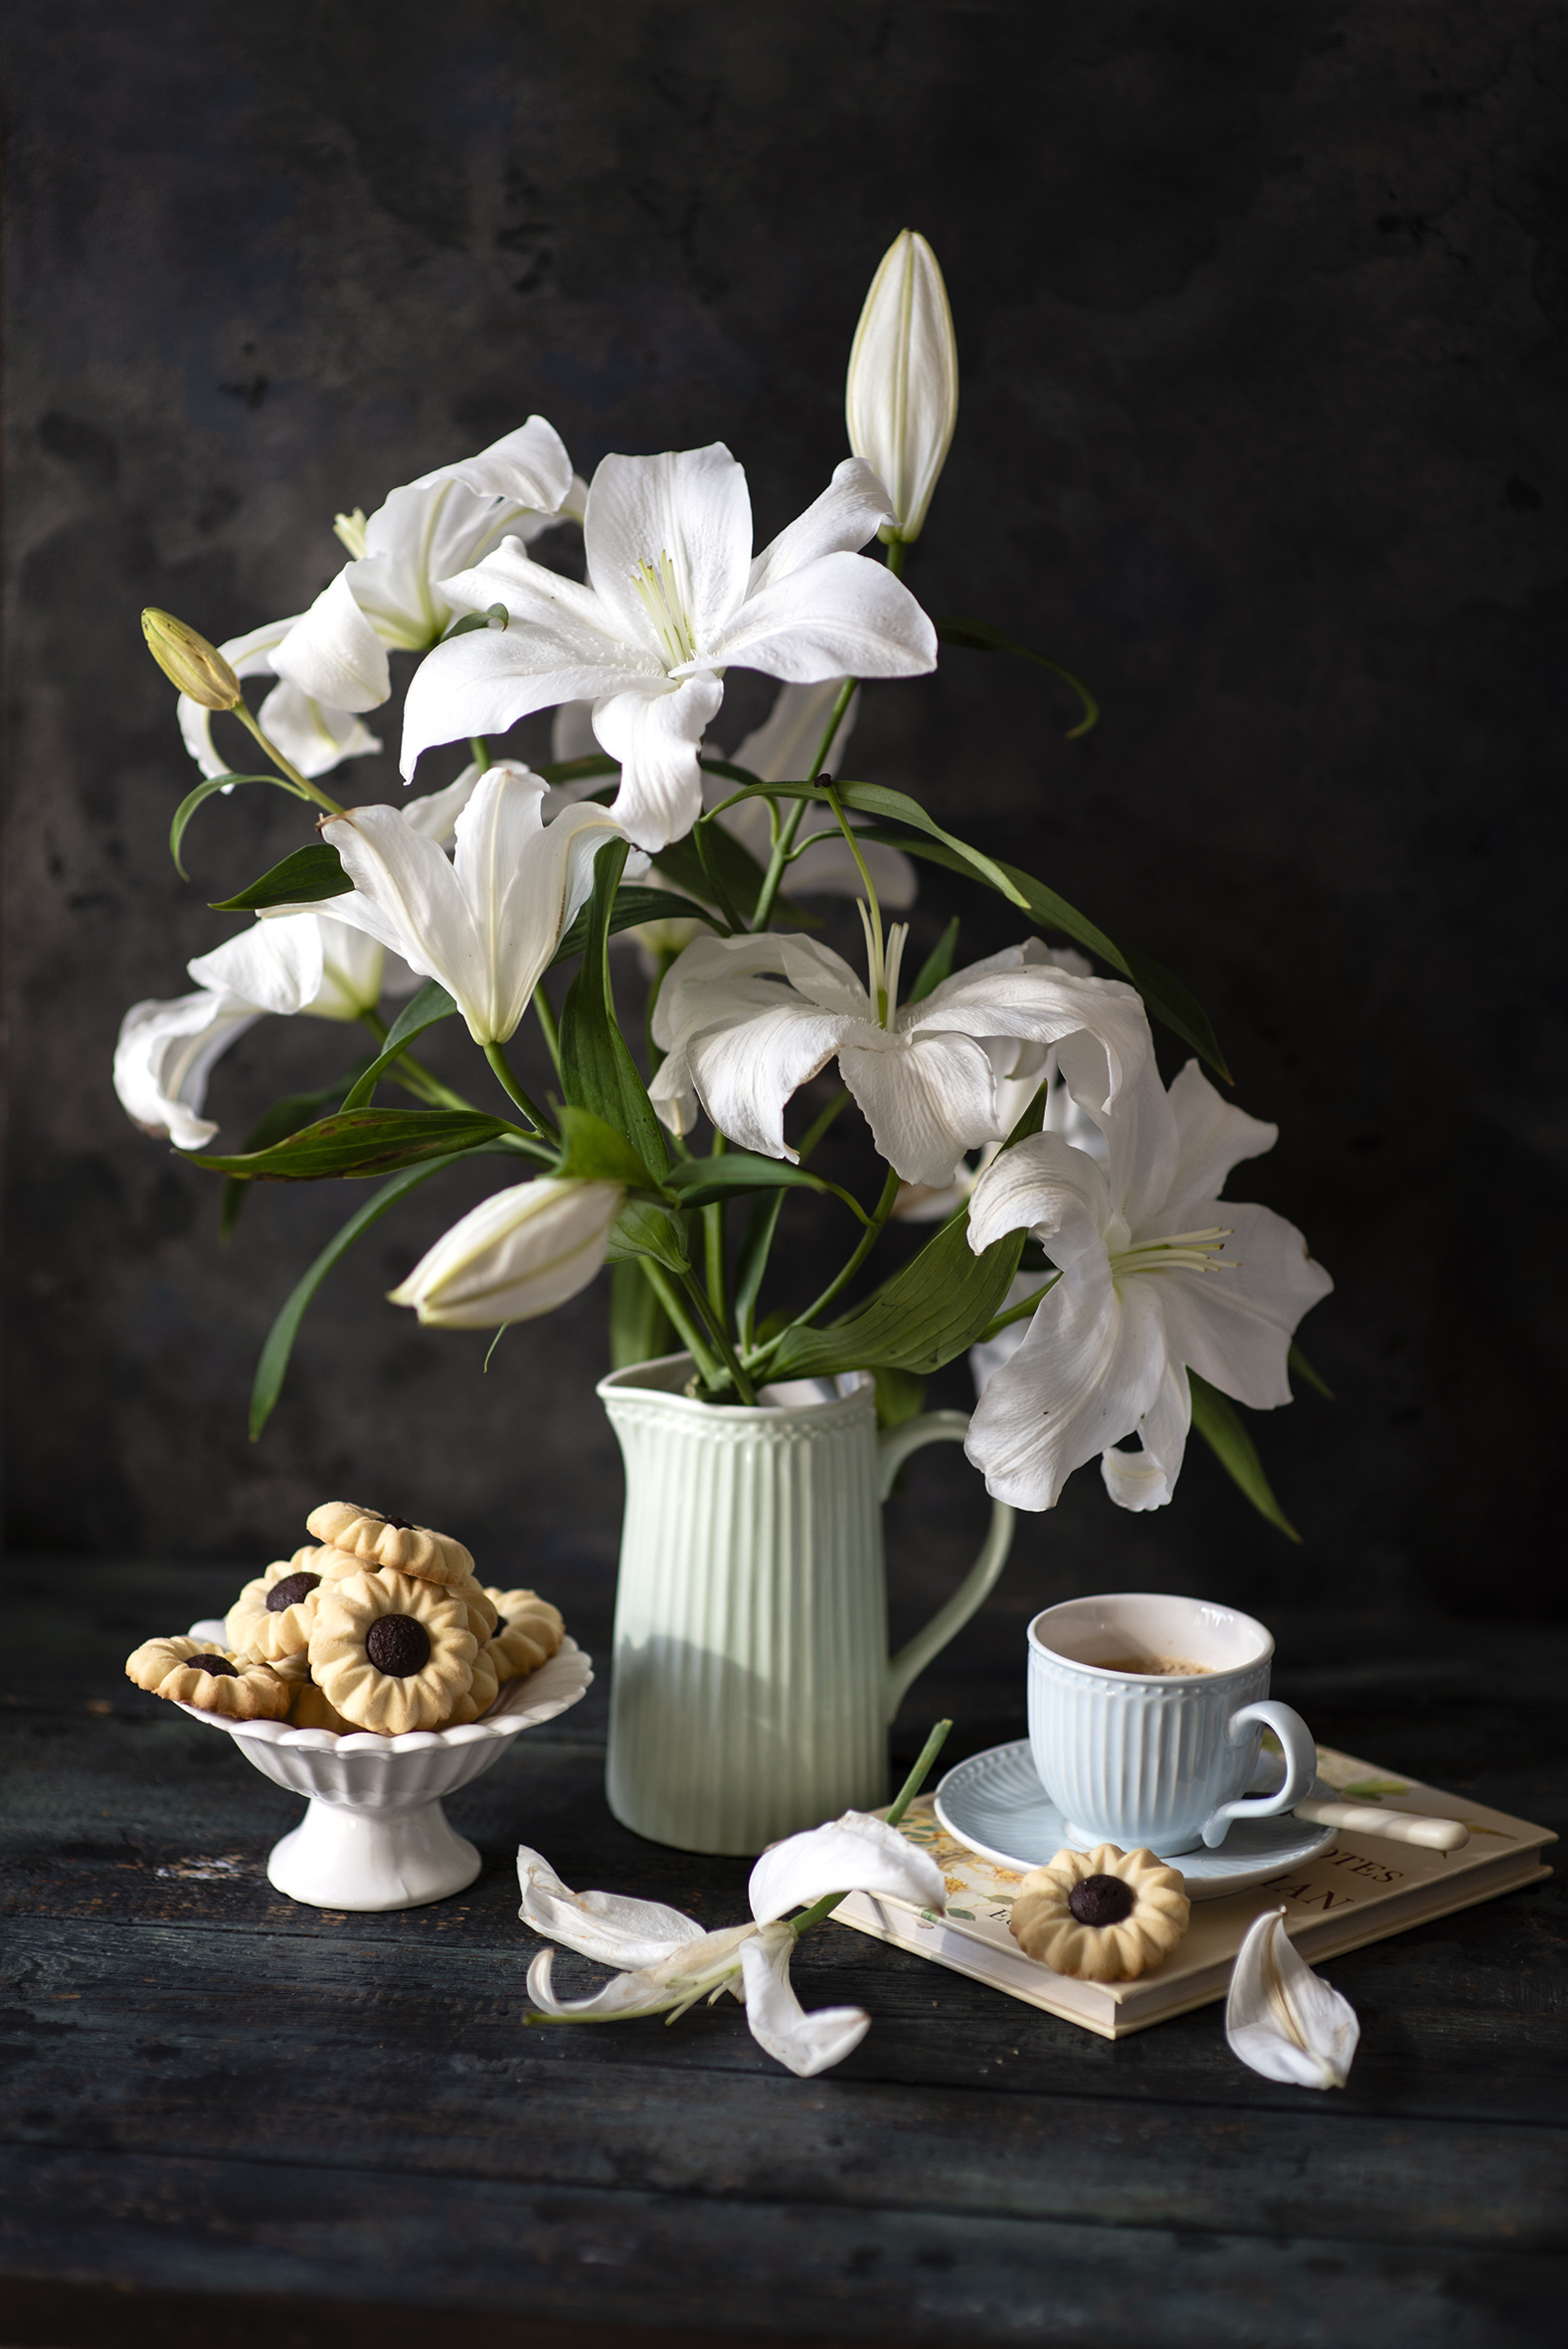 Photos White Lilies Coffee Petals Flowers Cup Vase Food Cookies Still-life Wood planks  for Mobile phone lilium flower boards